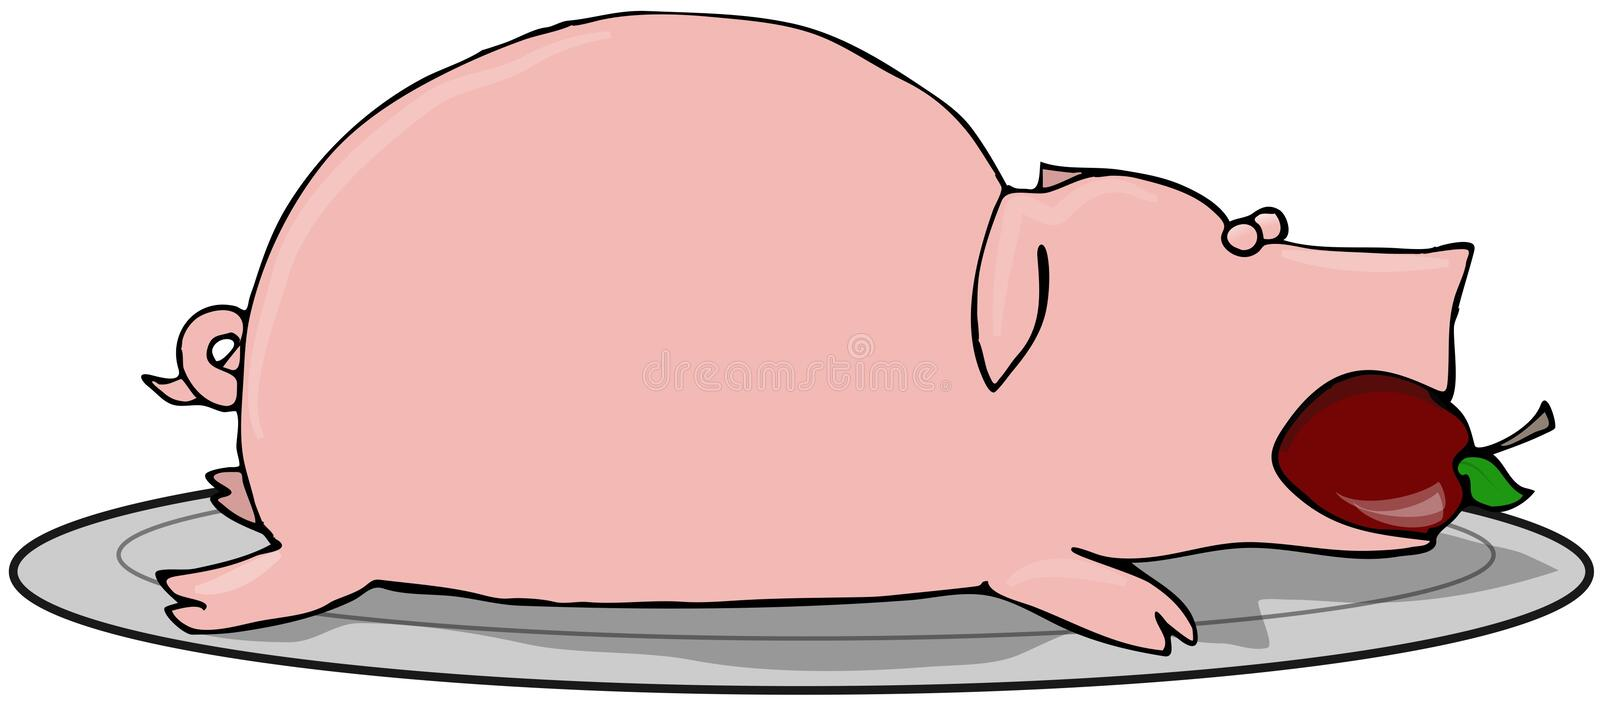 Download Pig Roast stock illustration. Image of cooked, plate, dinner - 9524735